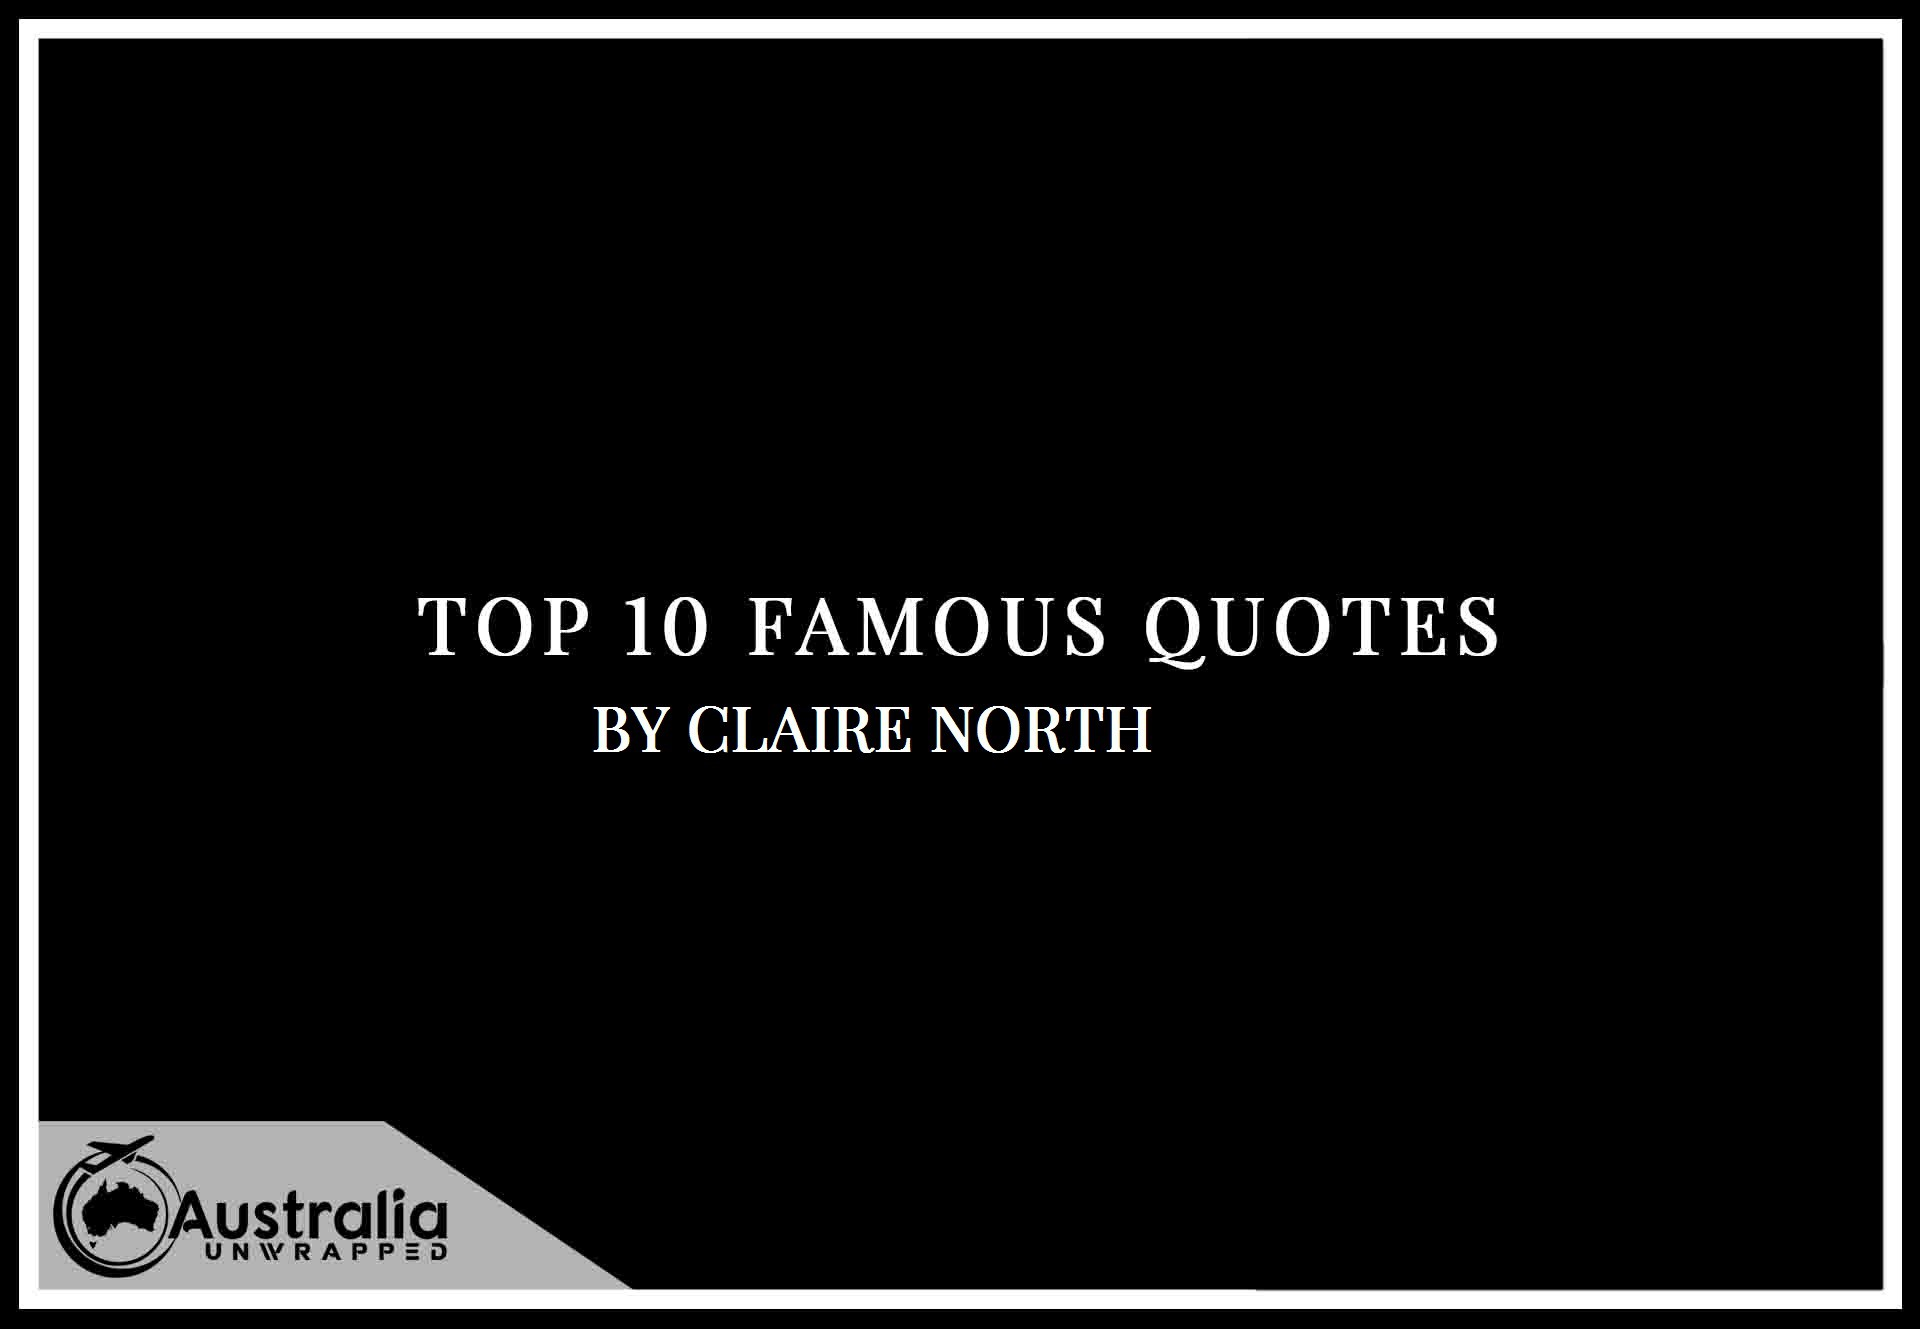 Claire North's Top 10 Popular and Famous Quotes